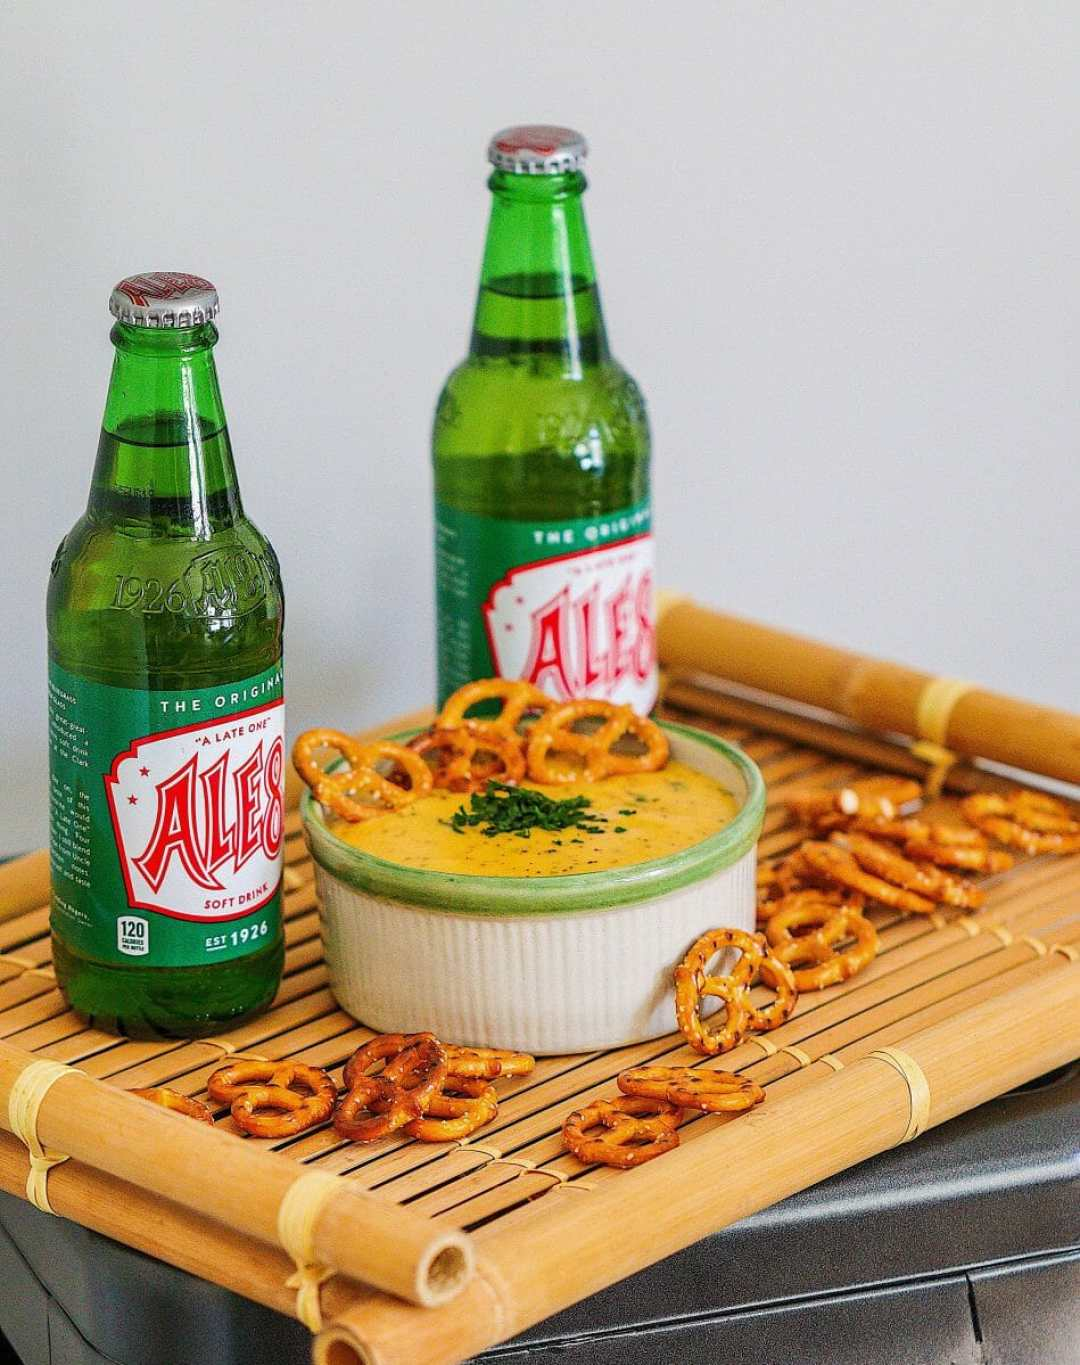 Ale-8-One sponsors the 2019 KY Beer Cheese Festival — plus, a beer cheese recipe by JC Phelps (JCP Eats)